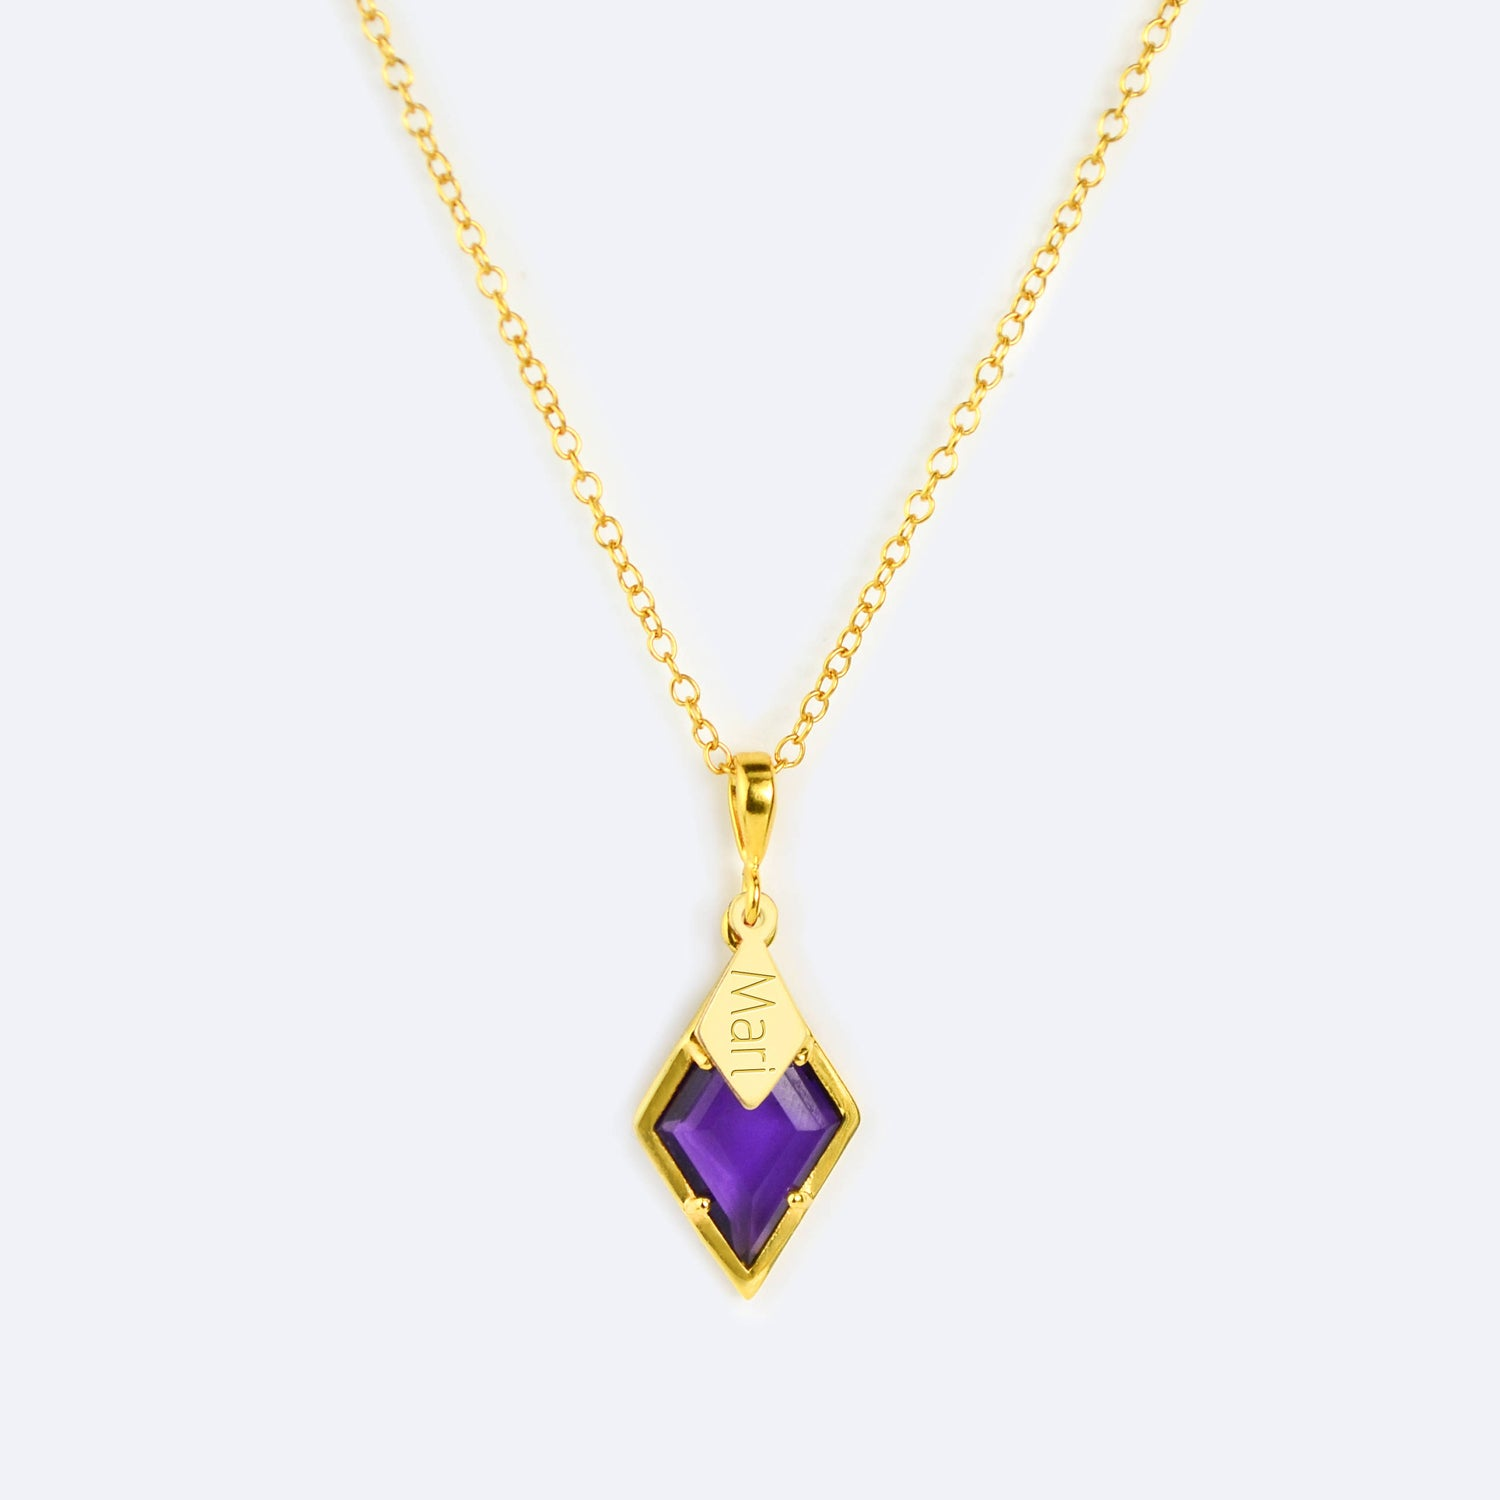 purple gold necklace ct tw rose zoom zm diamond kay hover to kaystore cut pendant mv round en